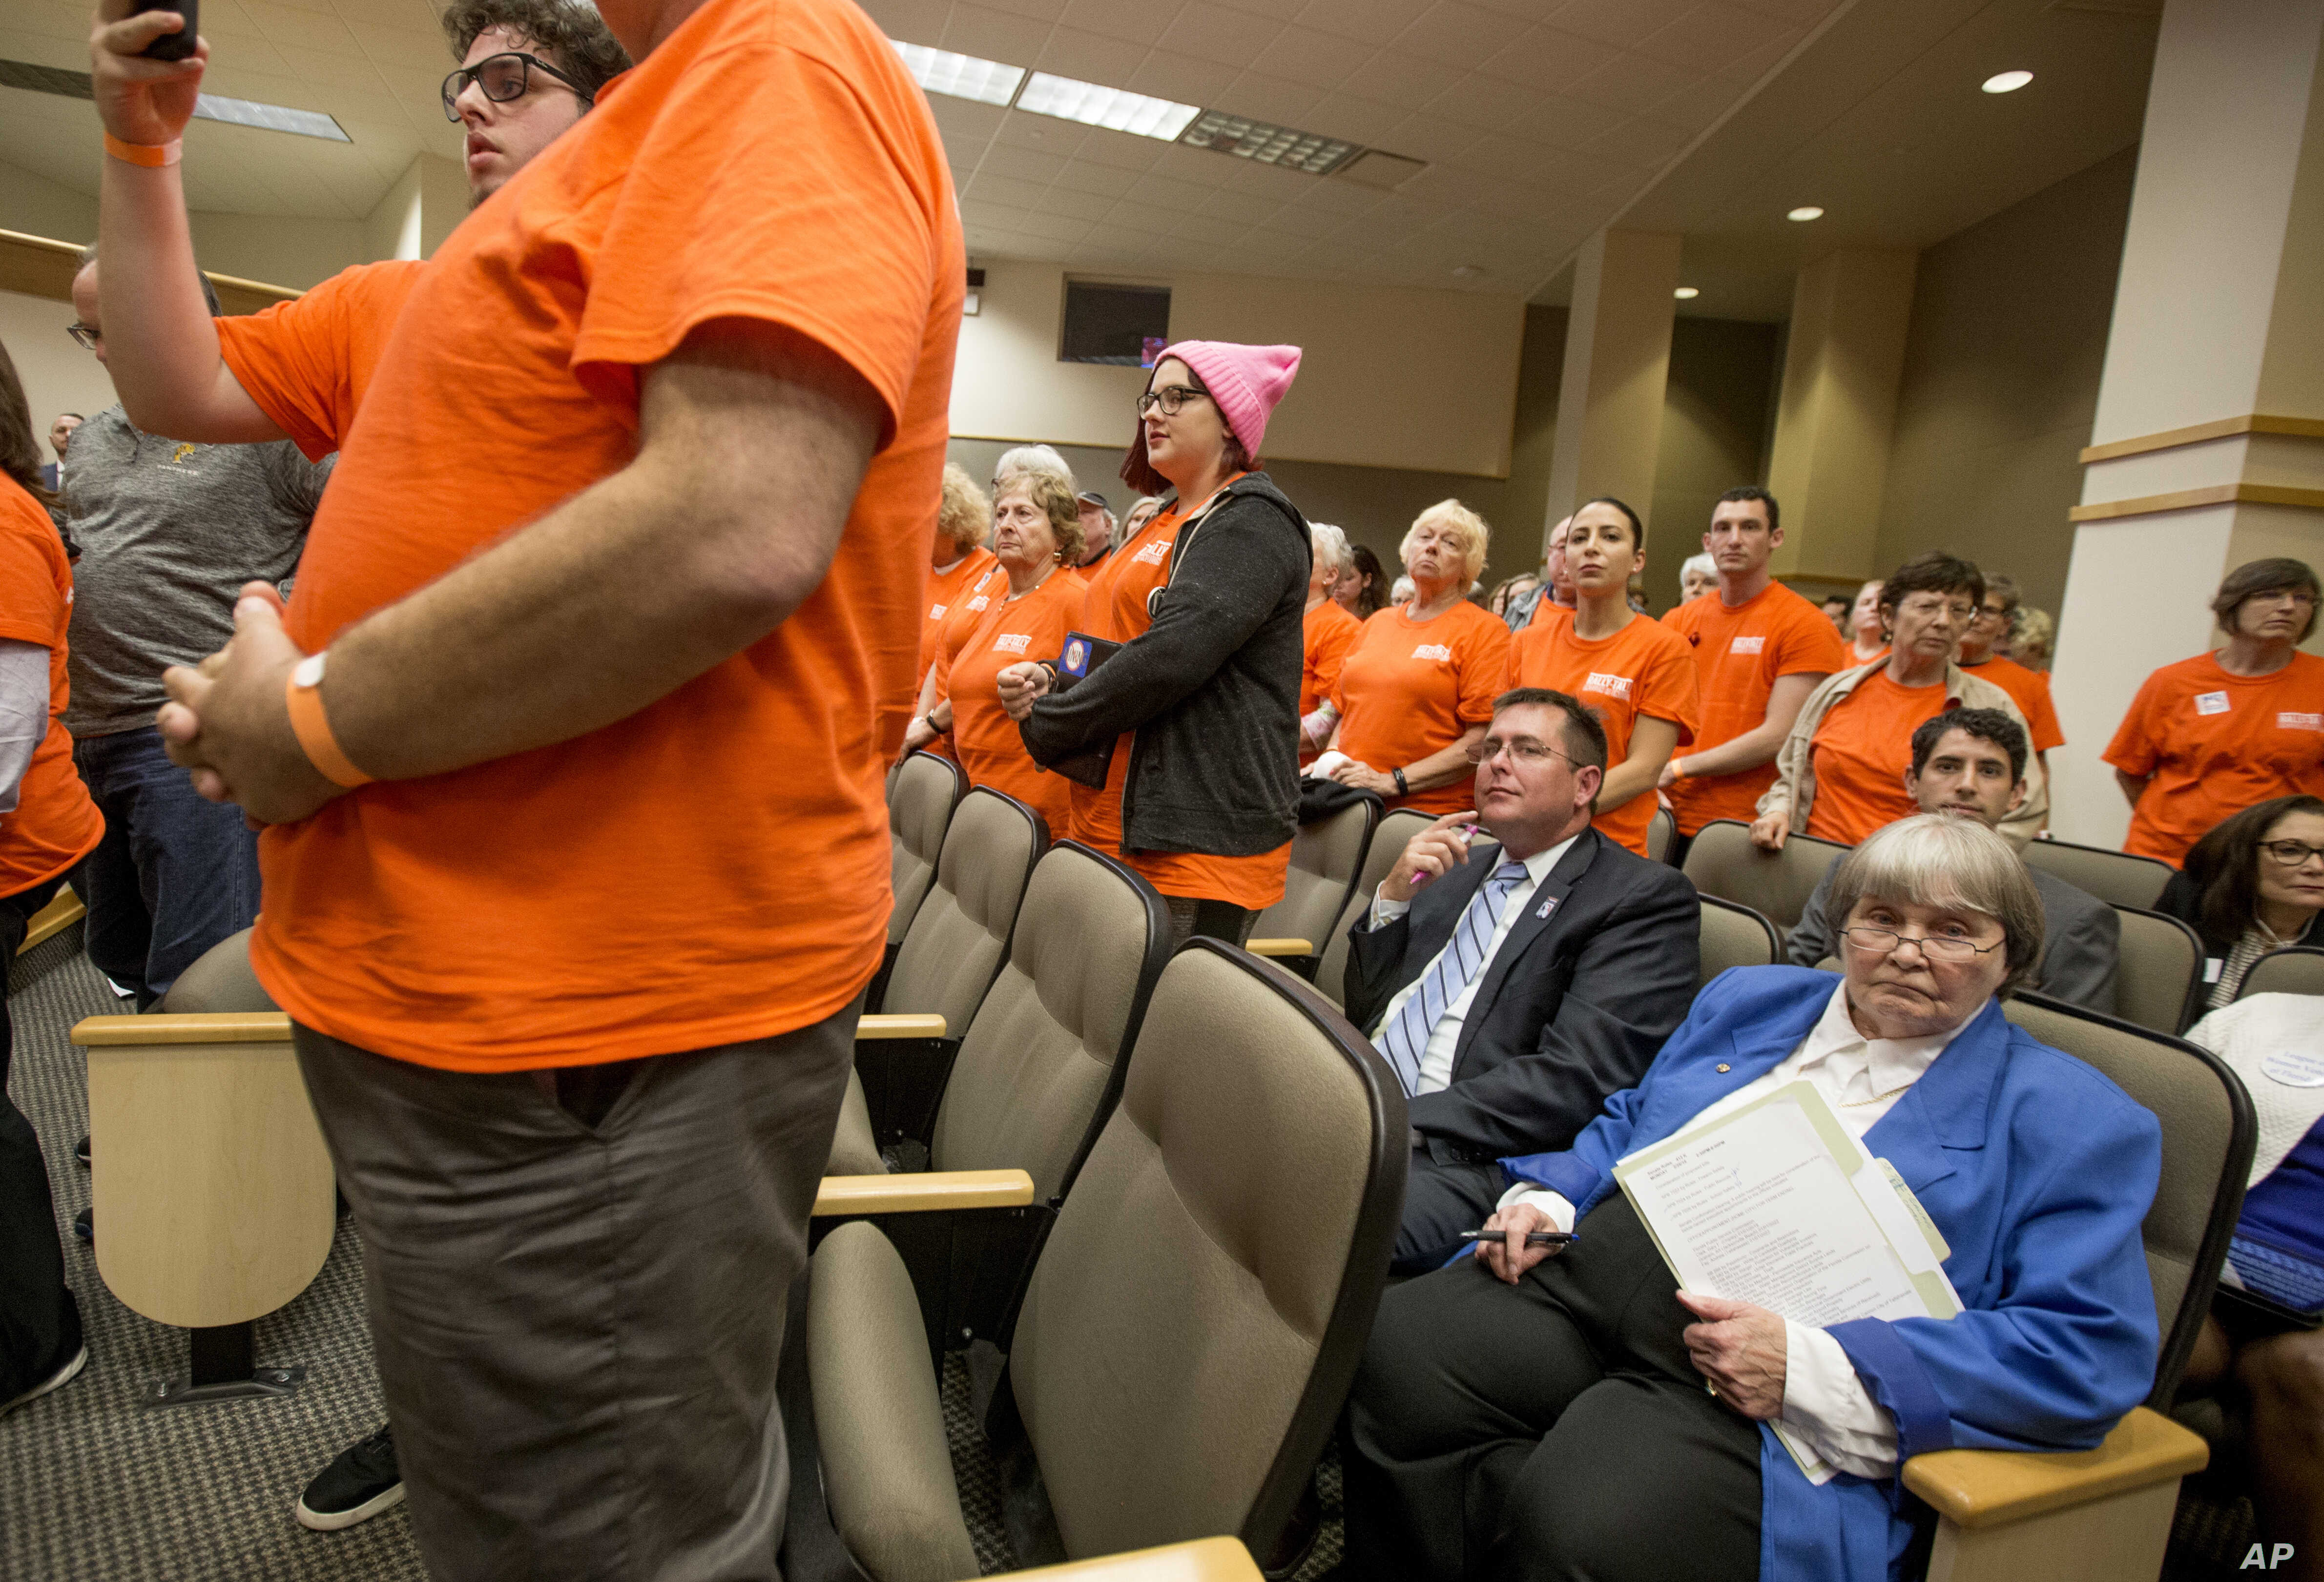 Gun lobbyist Marion Hammer, right, and Eric Friday, general counsel for Florida Carry, sit among protesters during the Senate Rules Committee meeting on gun safety at the Florida state Capitol after a rally in Tallahassee, Fla., Feb. 26, 2018.